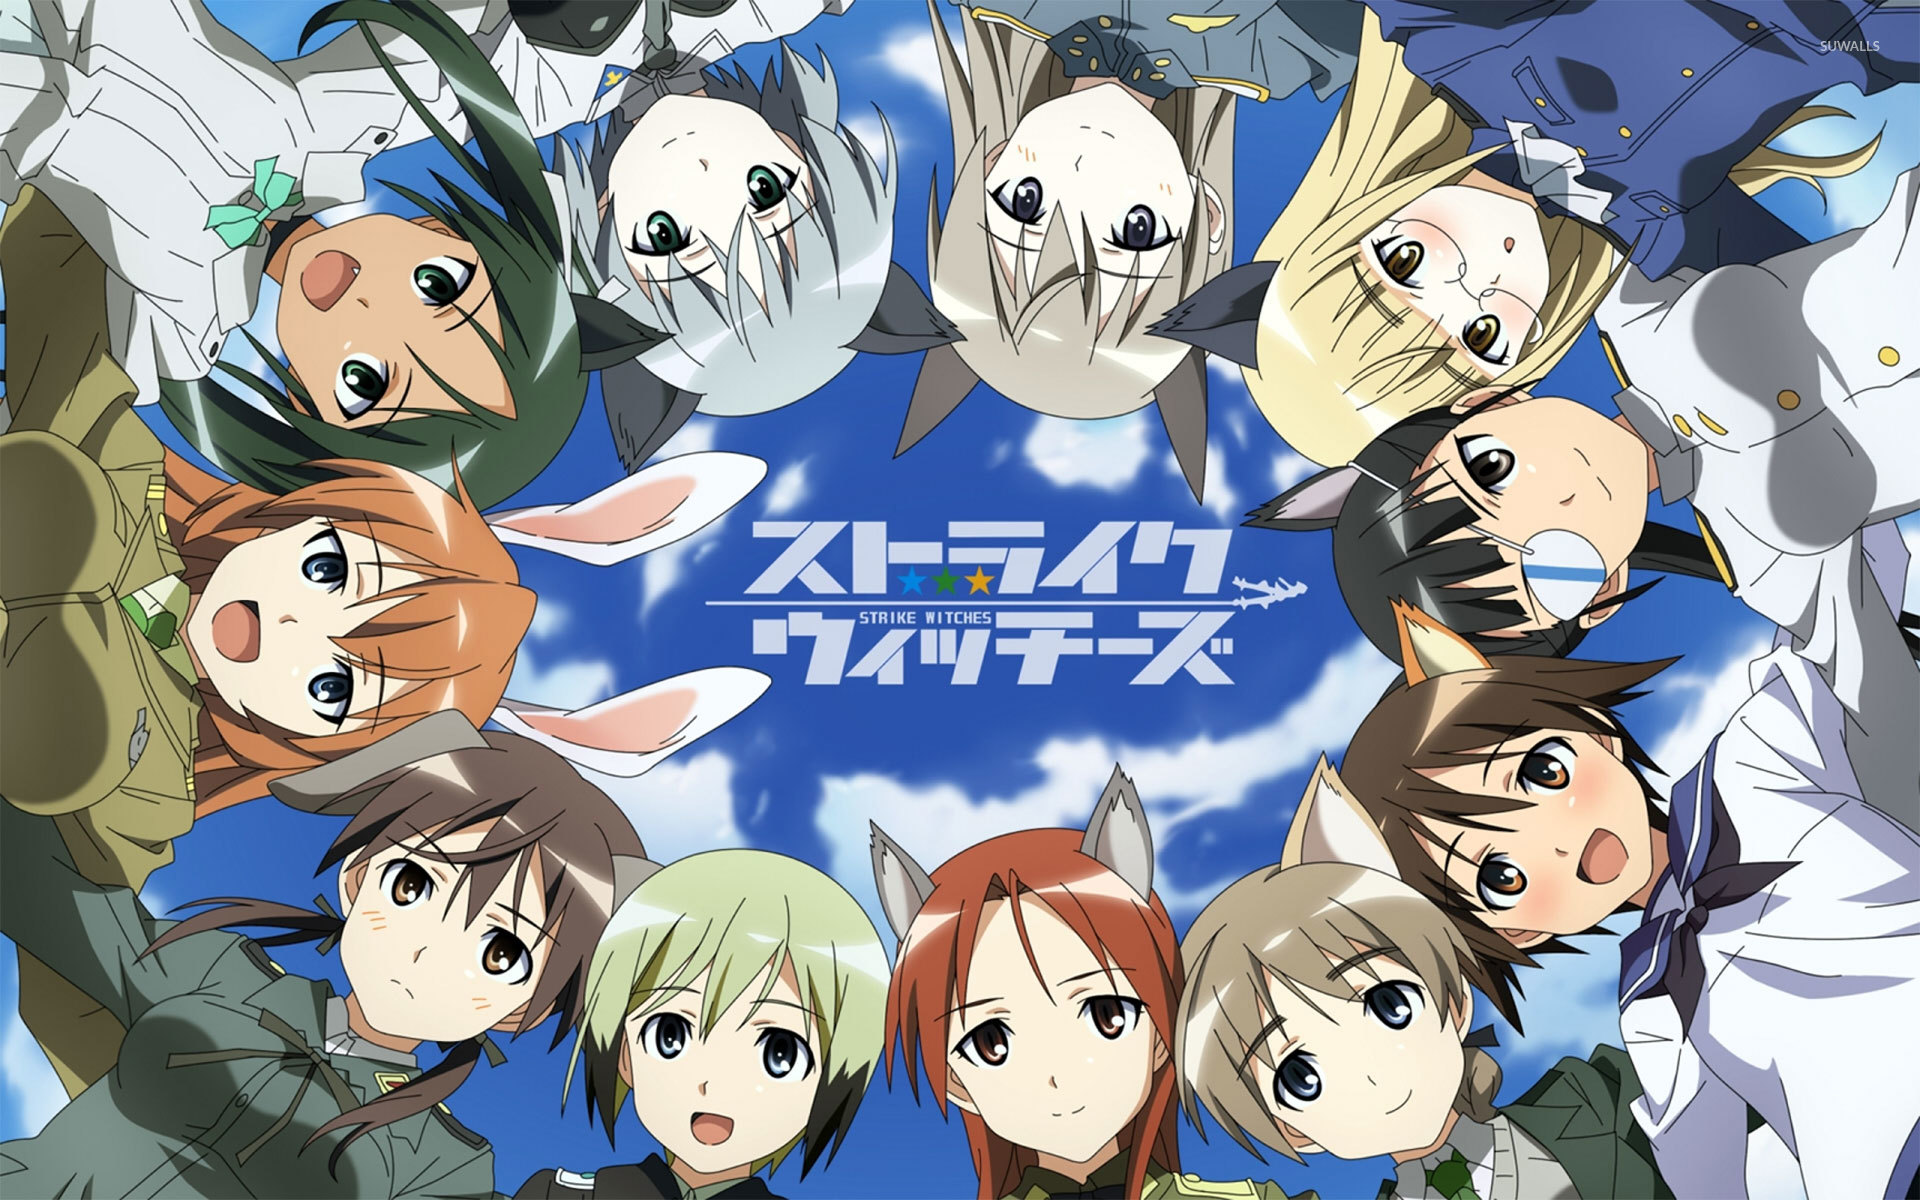 Strike Witches Wallpaper Anime Wallpapers 3892